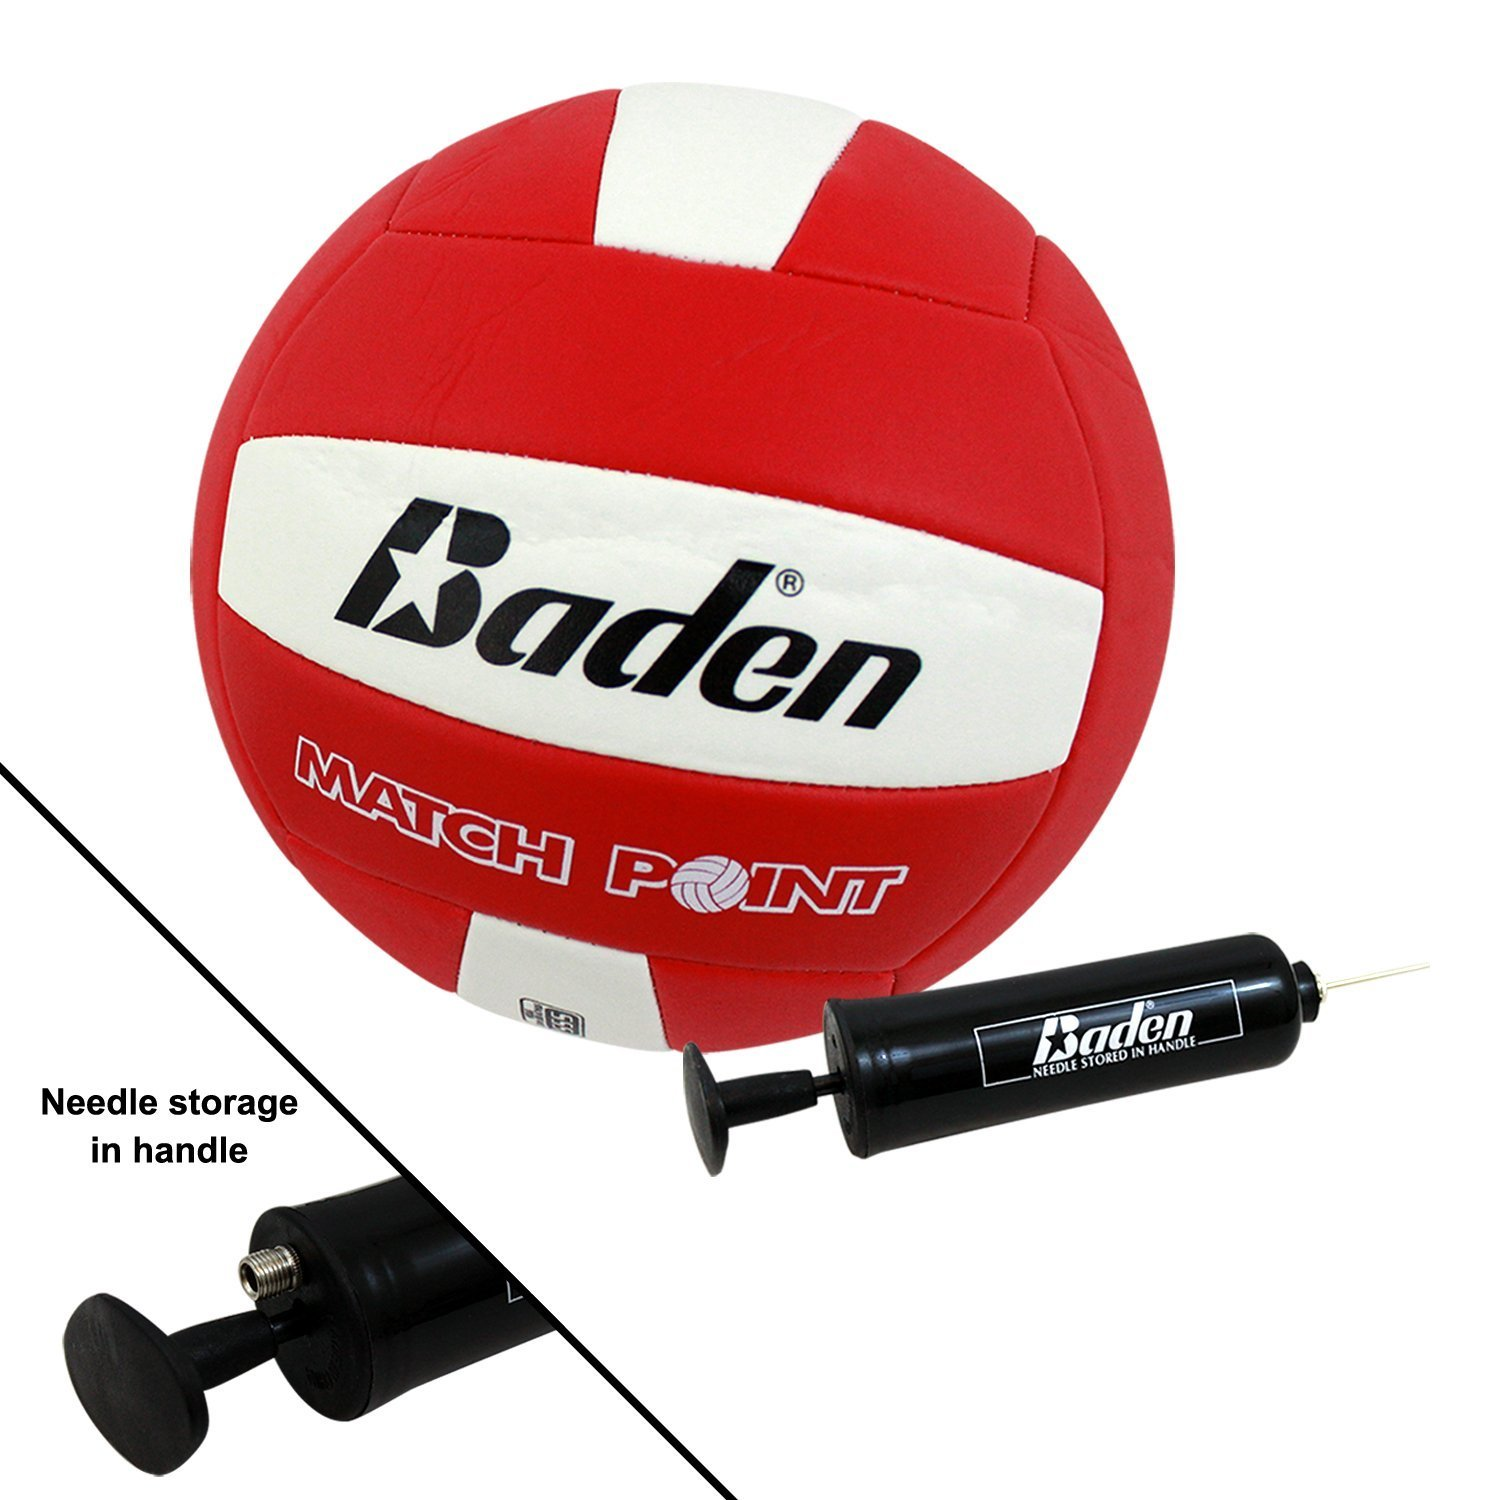 Bundle Includes 3 Items - Baden Champions Volleyball Badminton Set, Flickin' Chicken and Champion Sports Wooden Ring Toss Game by Baden, Champion Sports & Haywire Group (Image #7)